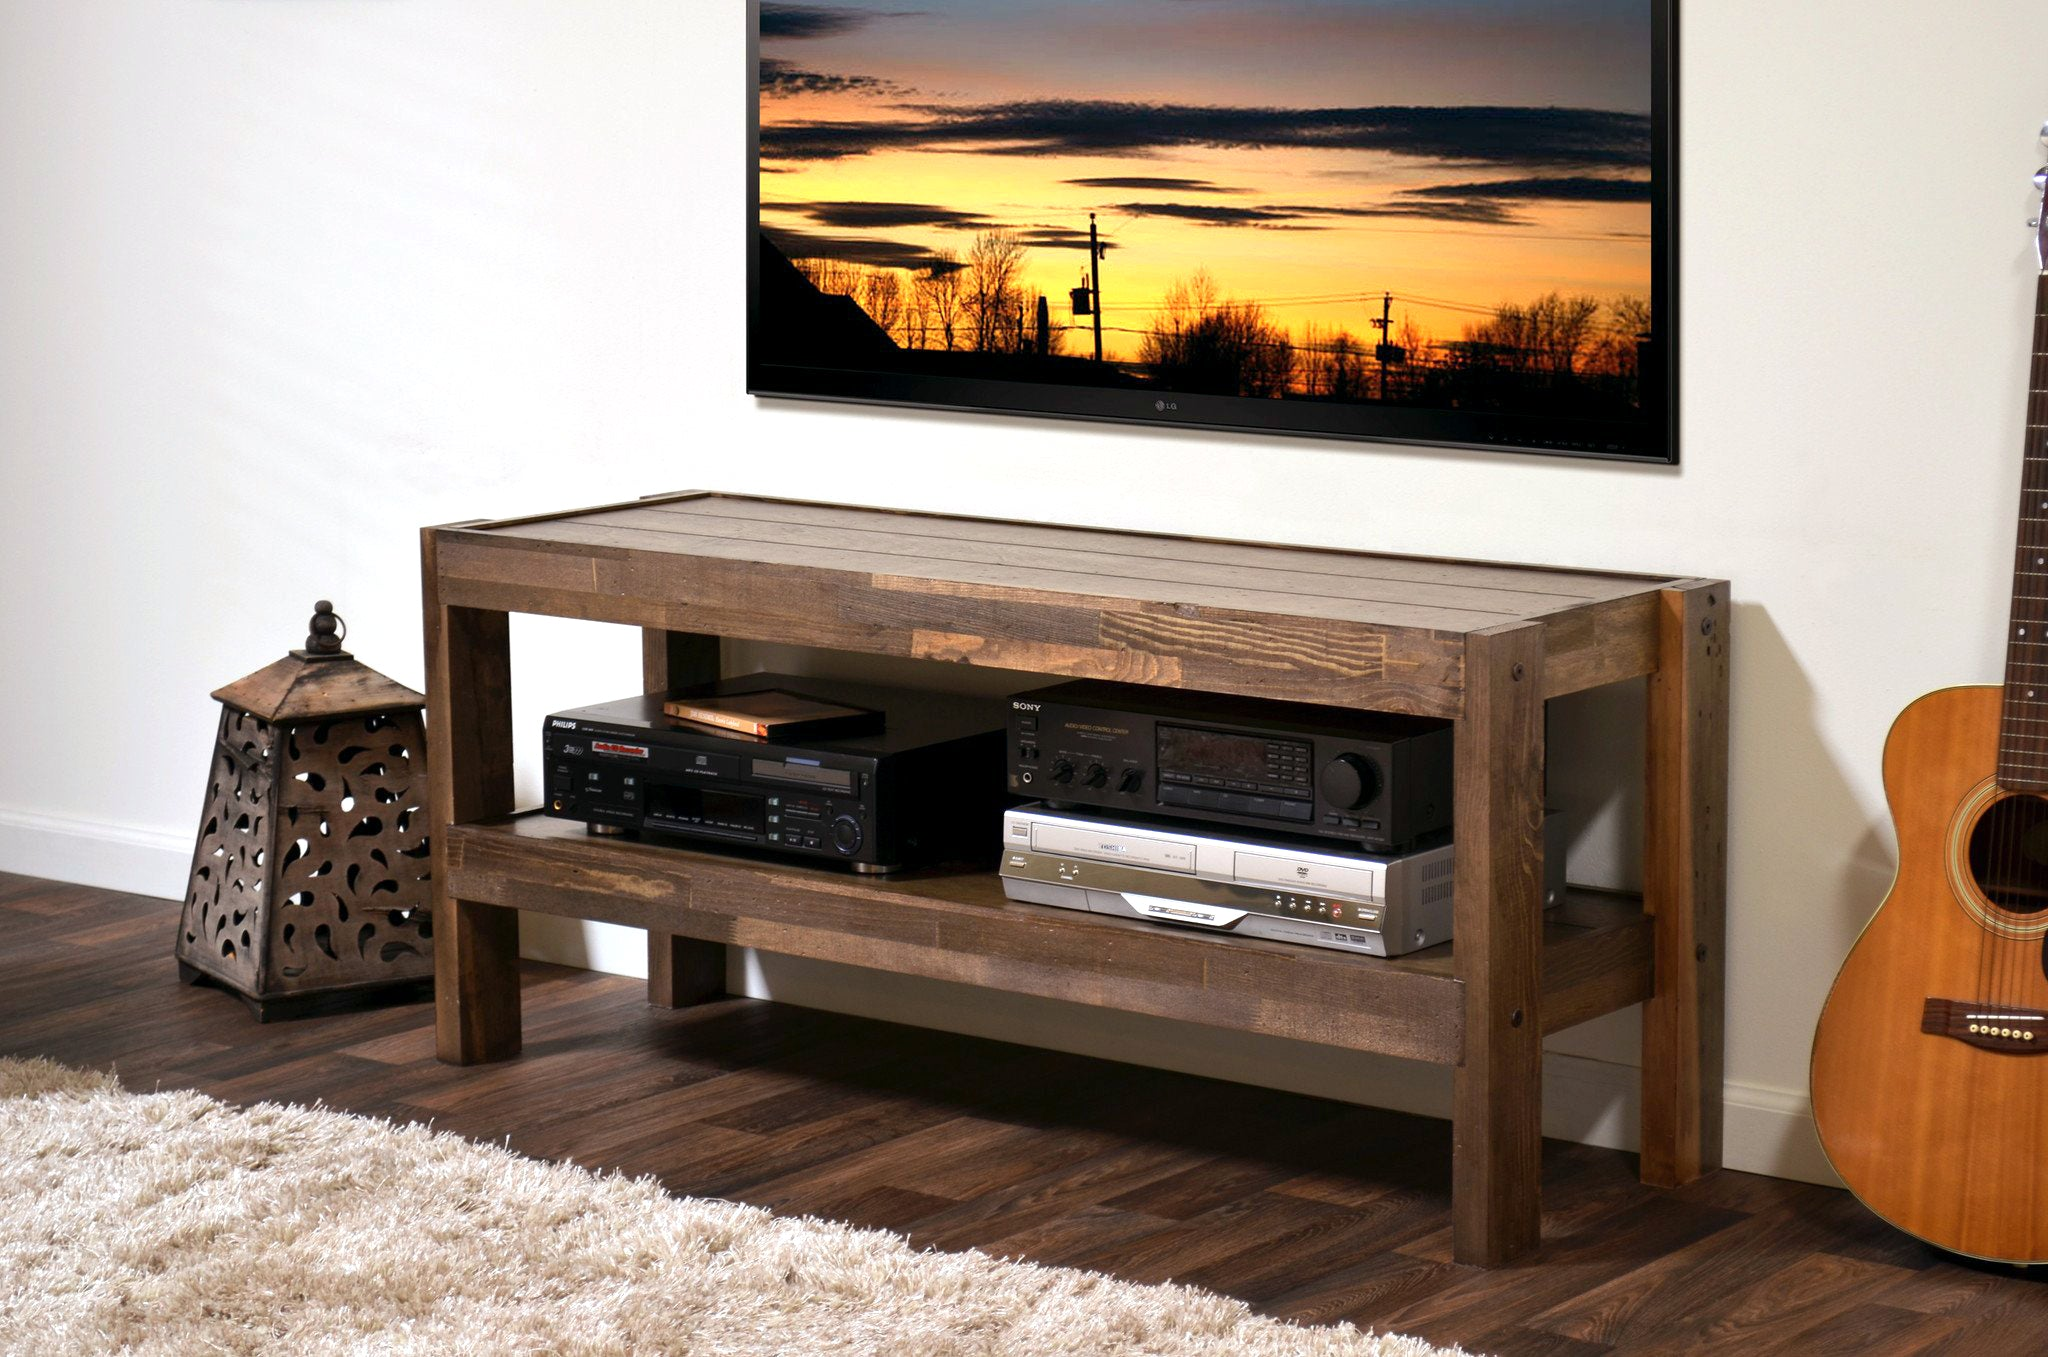 Incroyable Rustic Reclaimed Barn Wood Style TV Stand   PresEARTH Spice